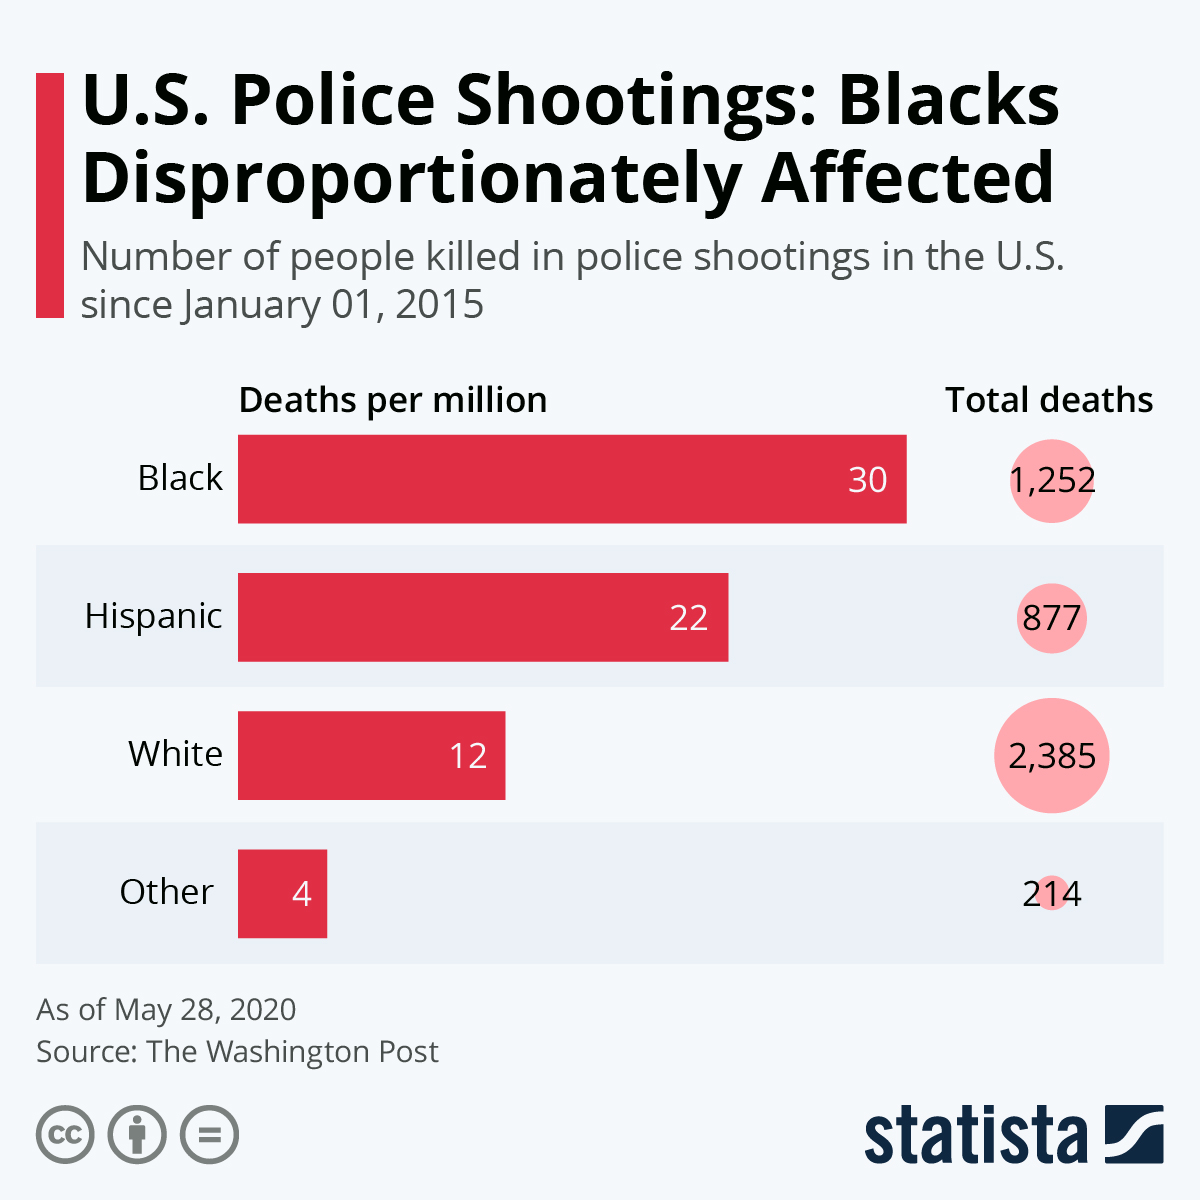 US Police Shootings: Blacks Disproportionately Affected